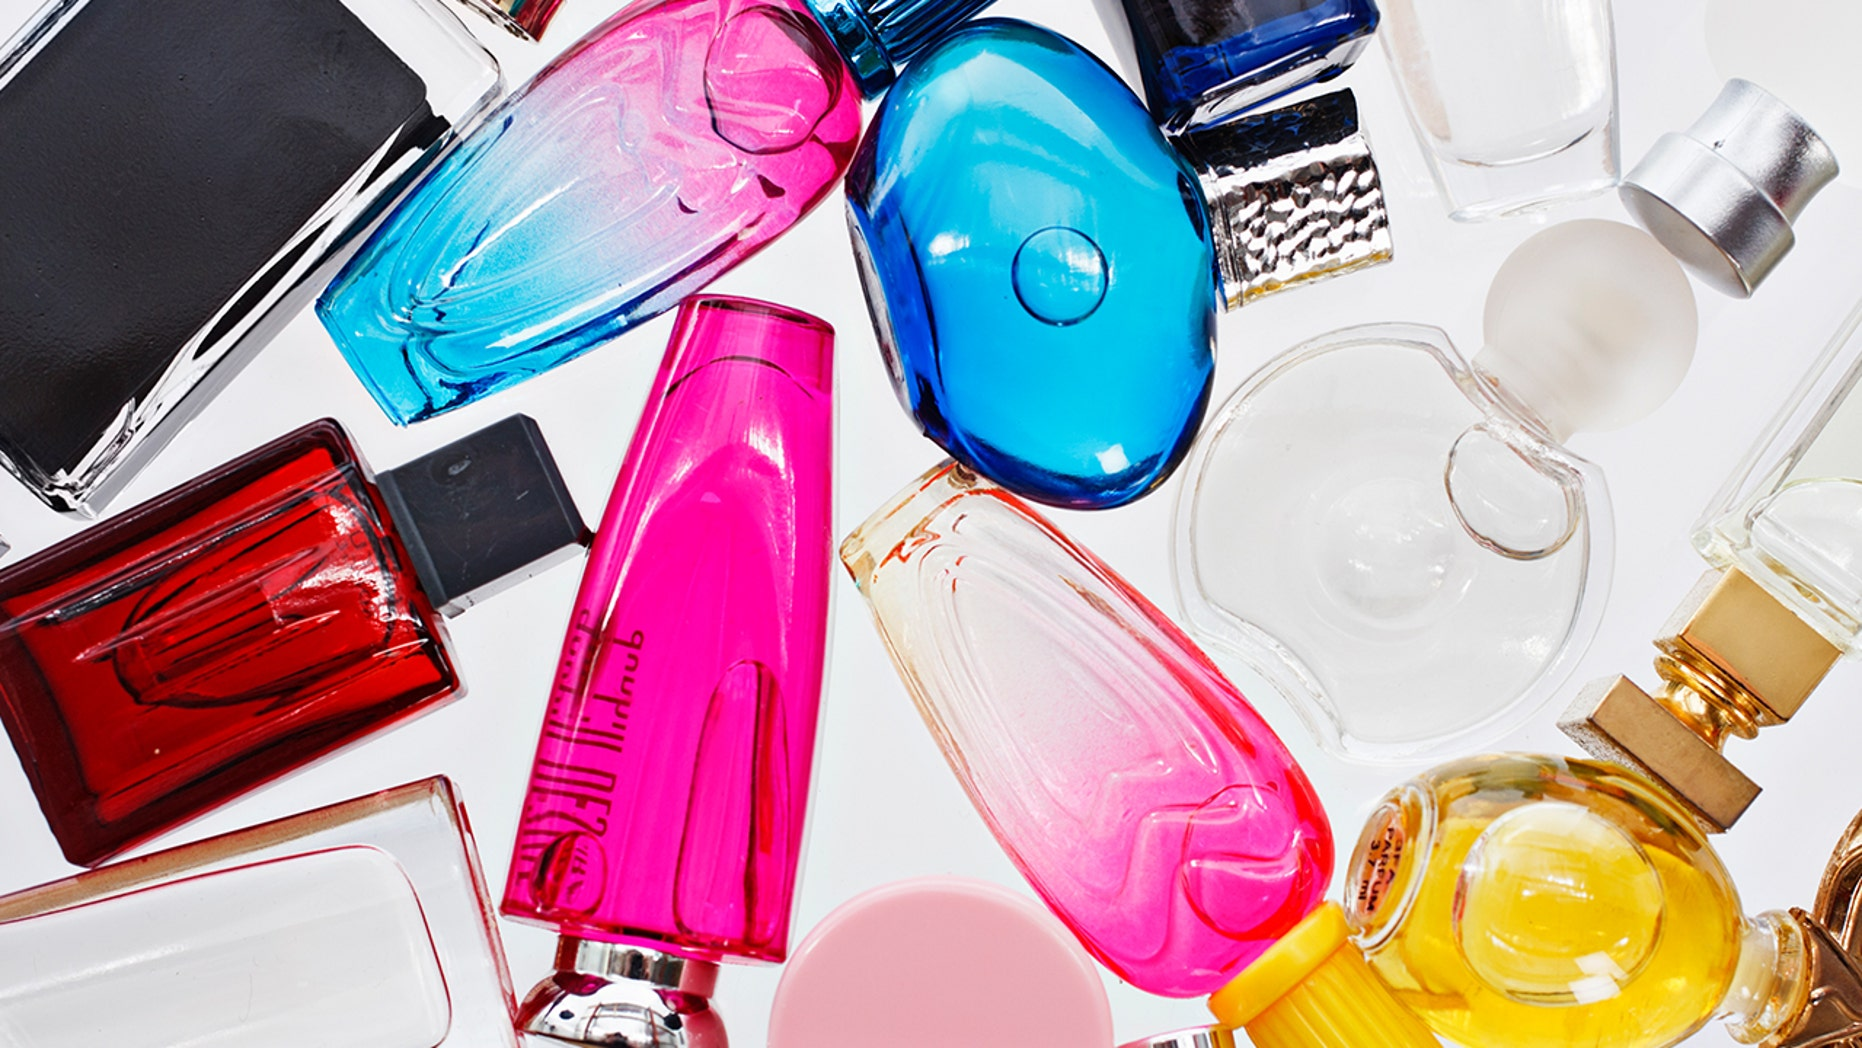 Fake designer make-up and perfume may contain toxic cyanide, arsenic, urine or even rat droppings.<br>